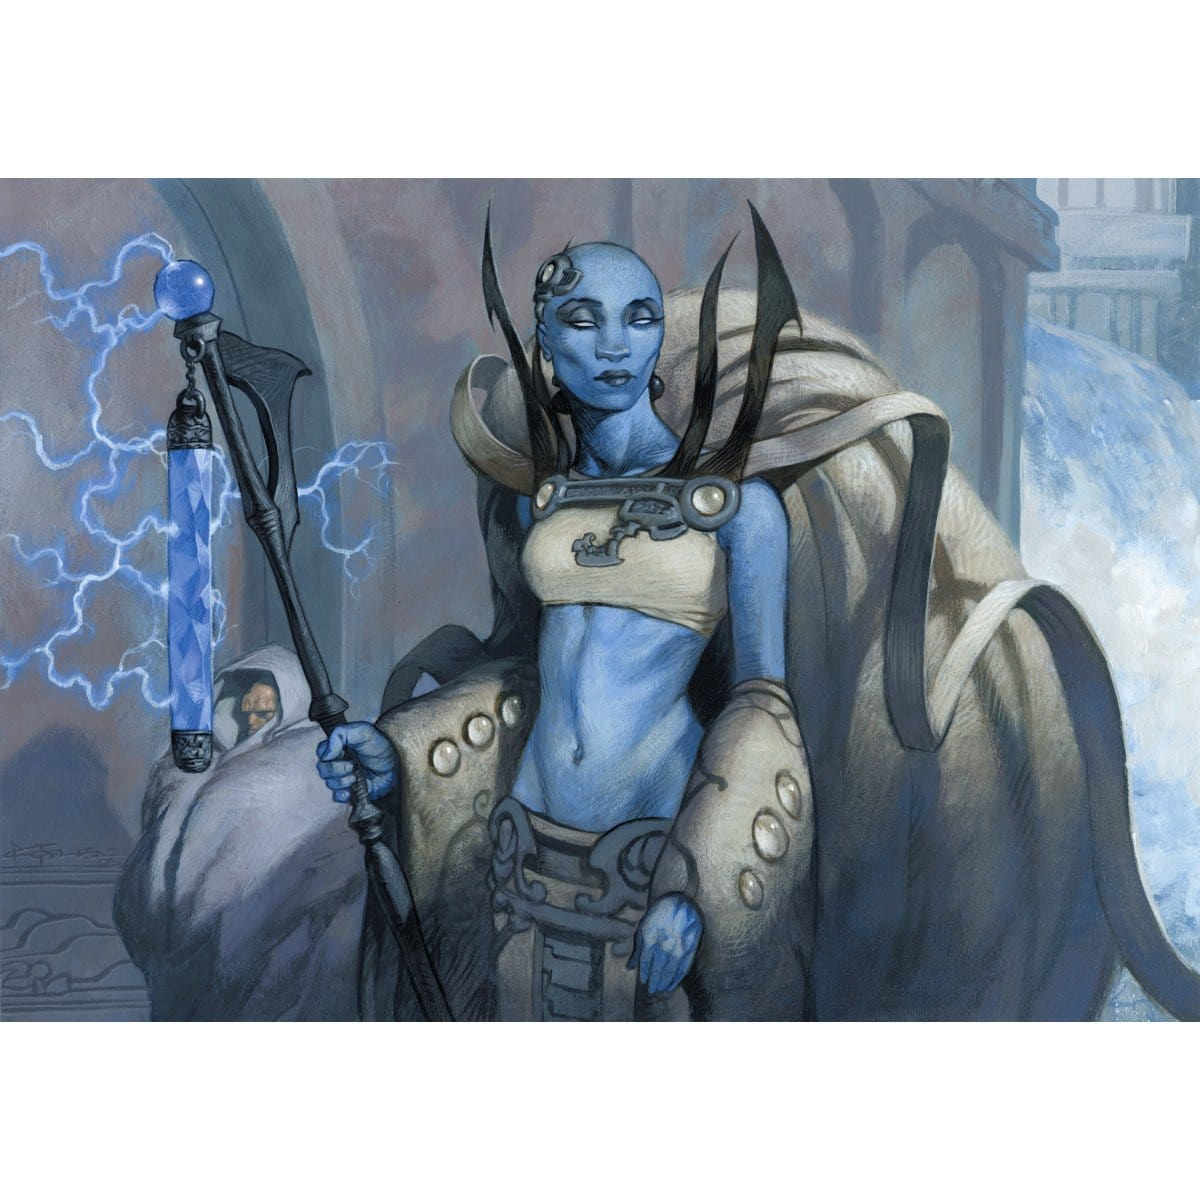 Azorius Guildmage Print - Print - Original Magic Art - Accessories for Magic the Gathering and other card games